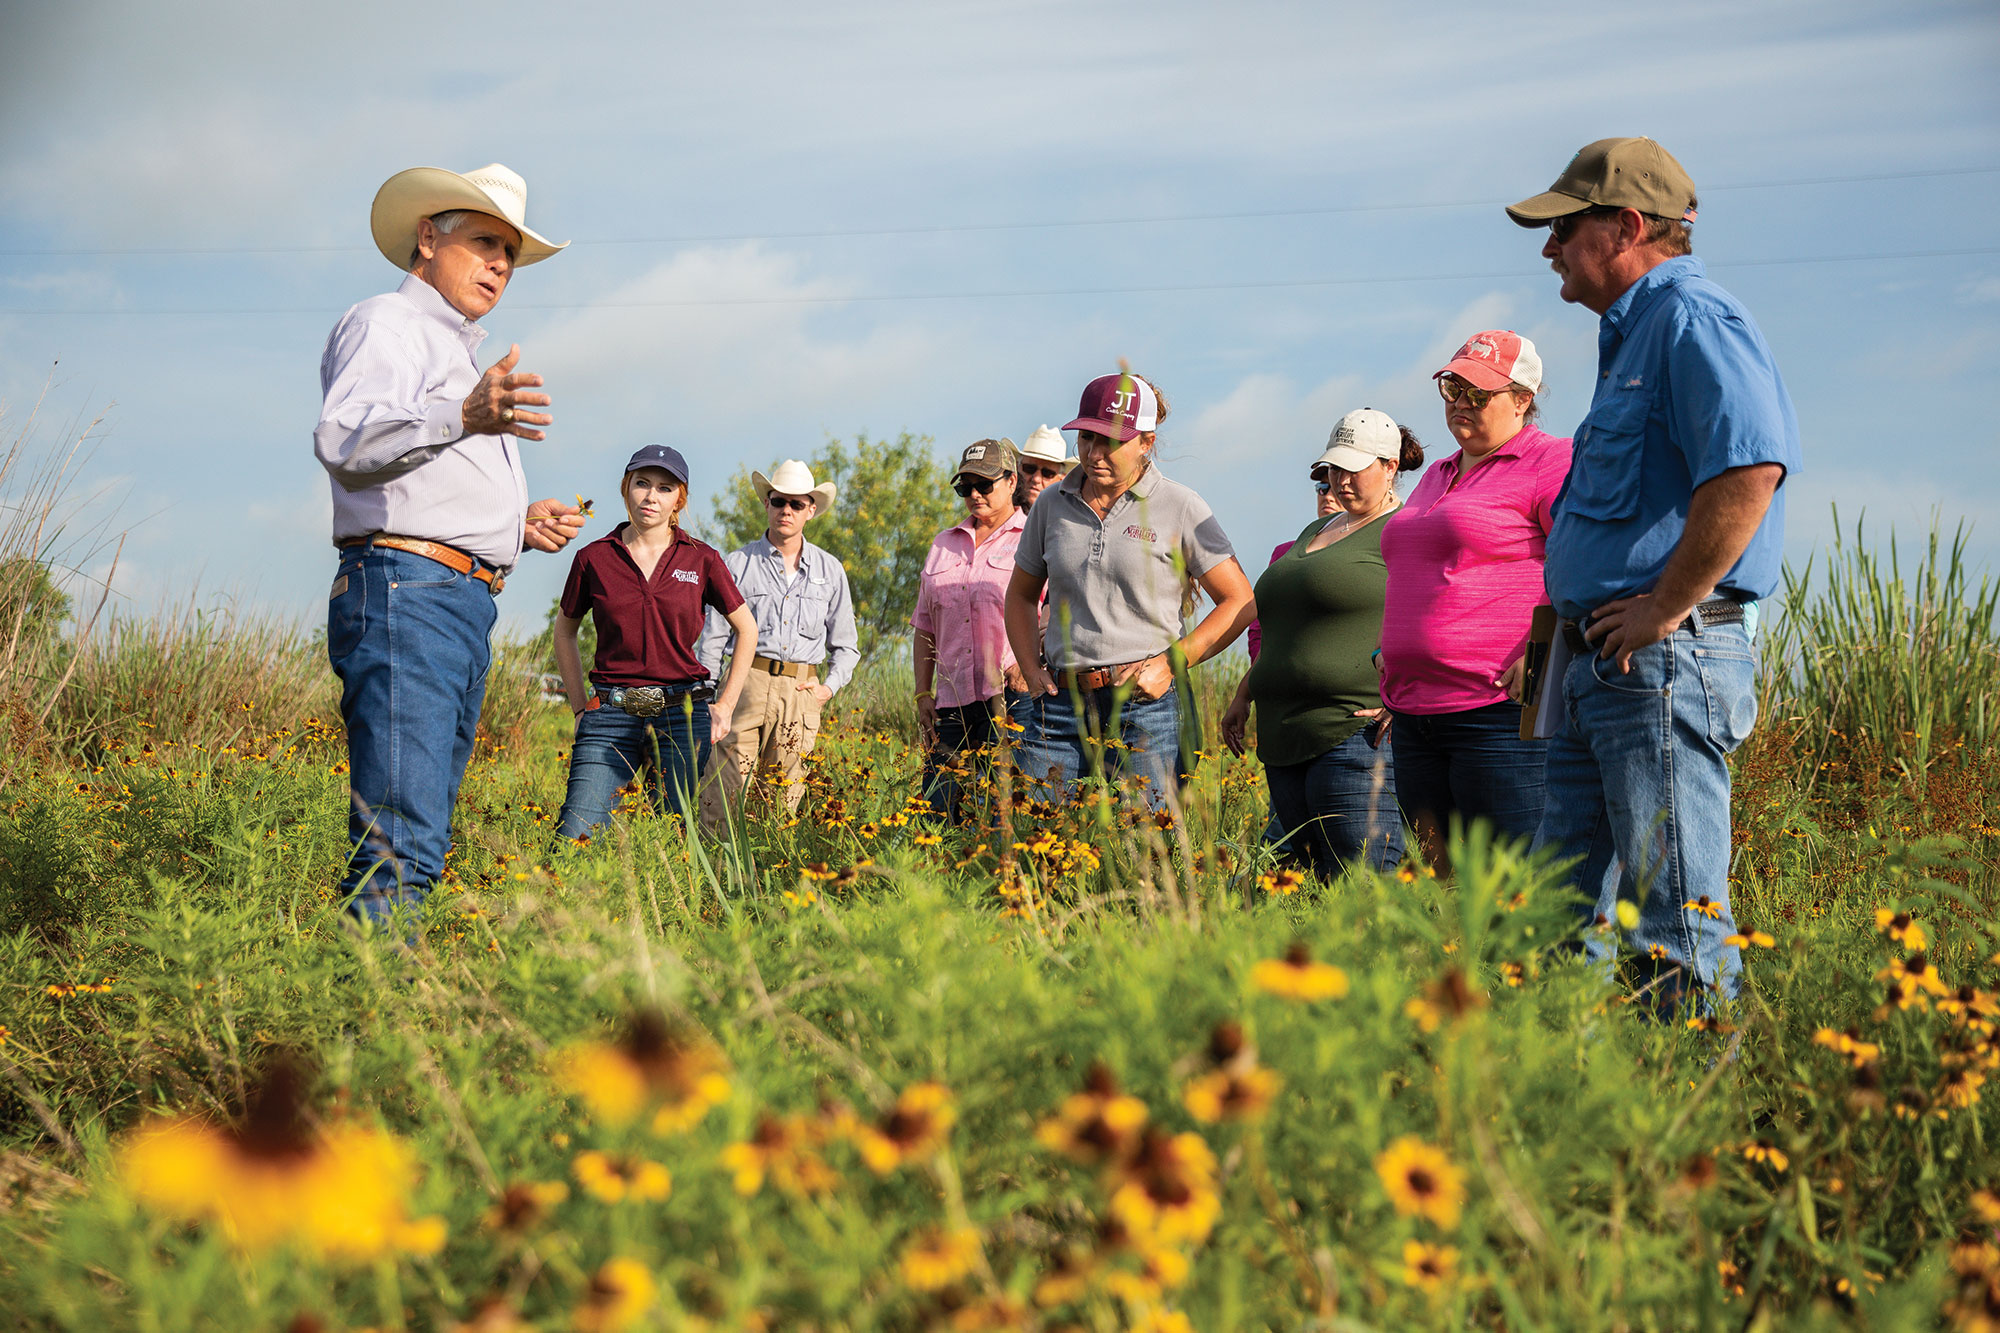 Gary Price (left) discusses soil microbes, water quality and broader beef industry challenges with county extension agents during a tour of his ranch.